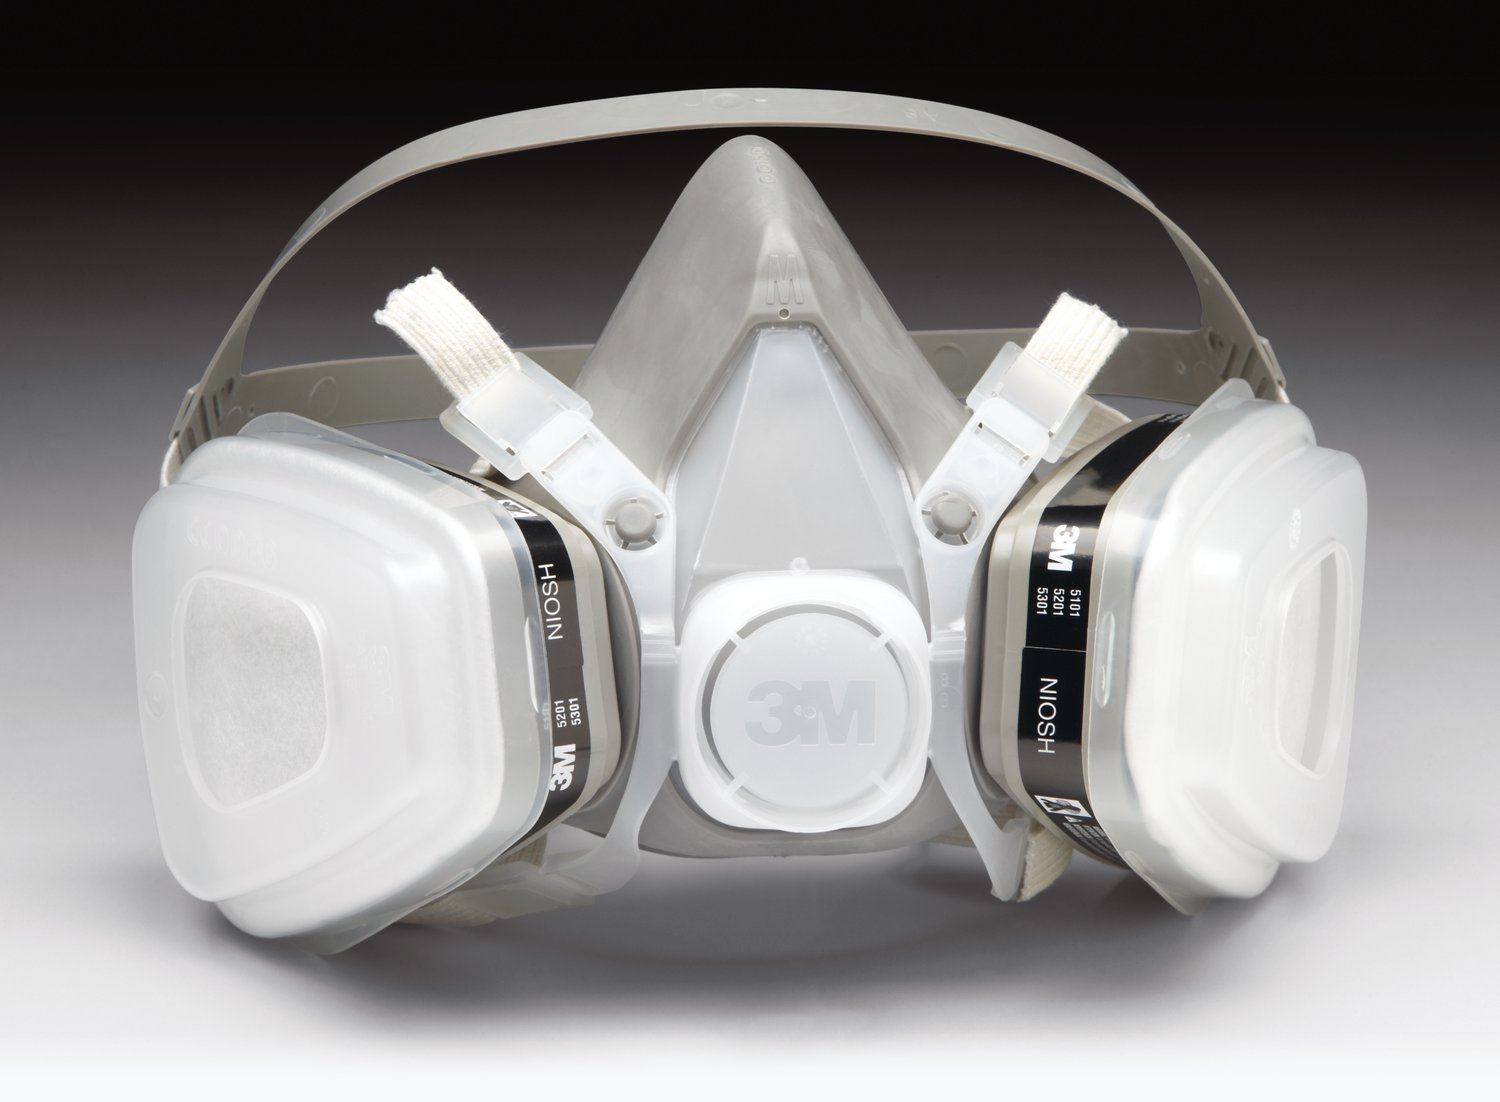 07191 3M Respirator Used When Spray Paint Applications